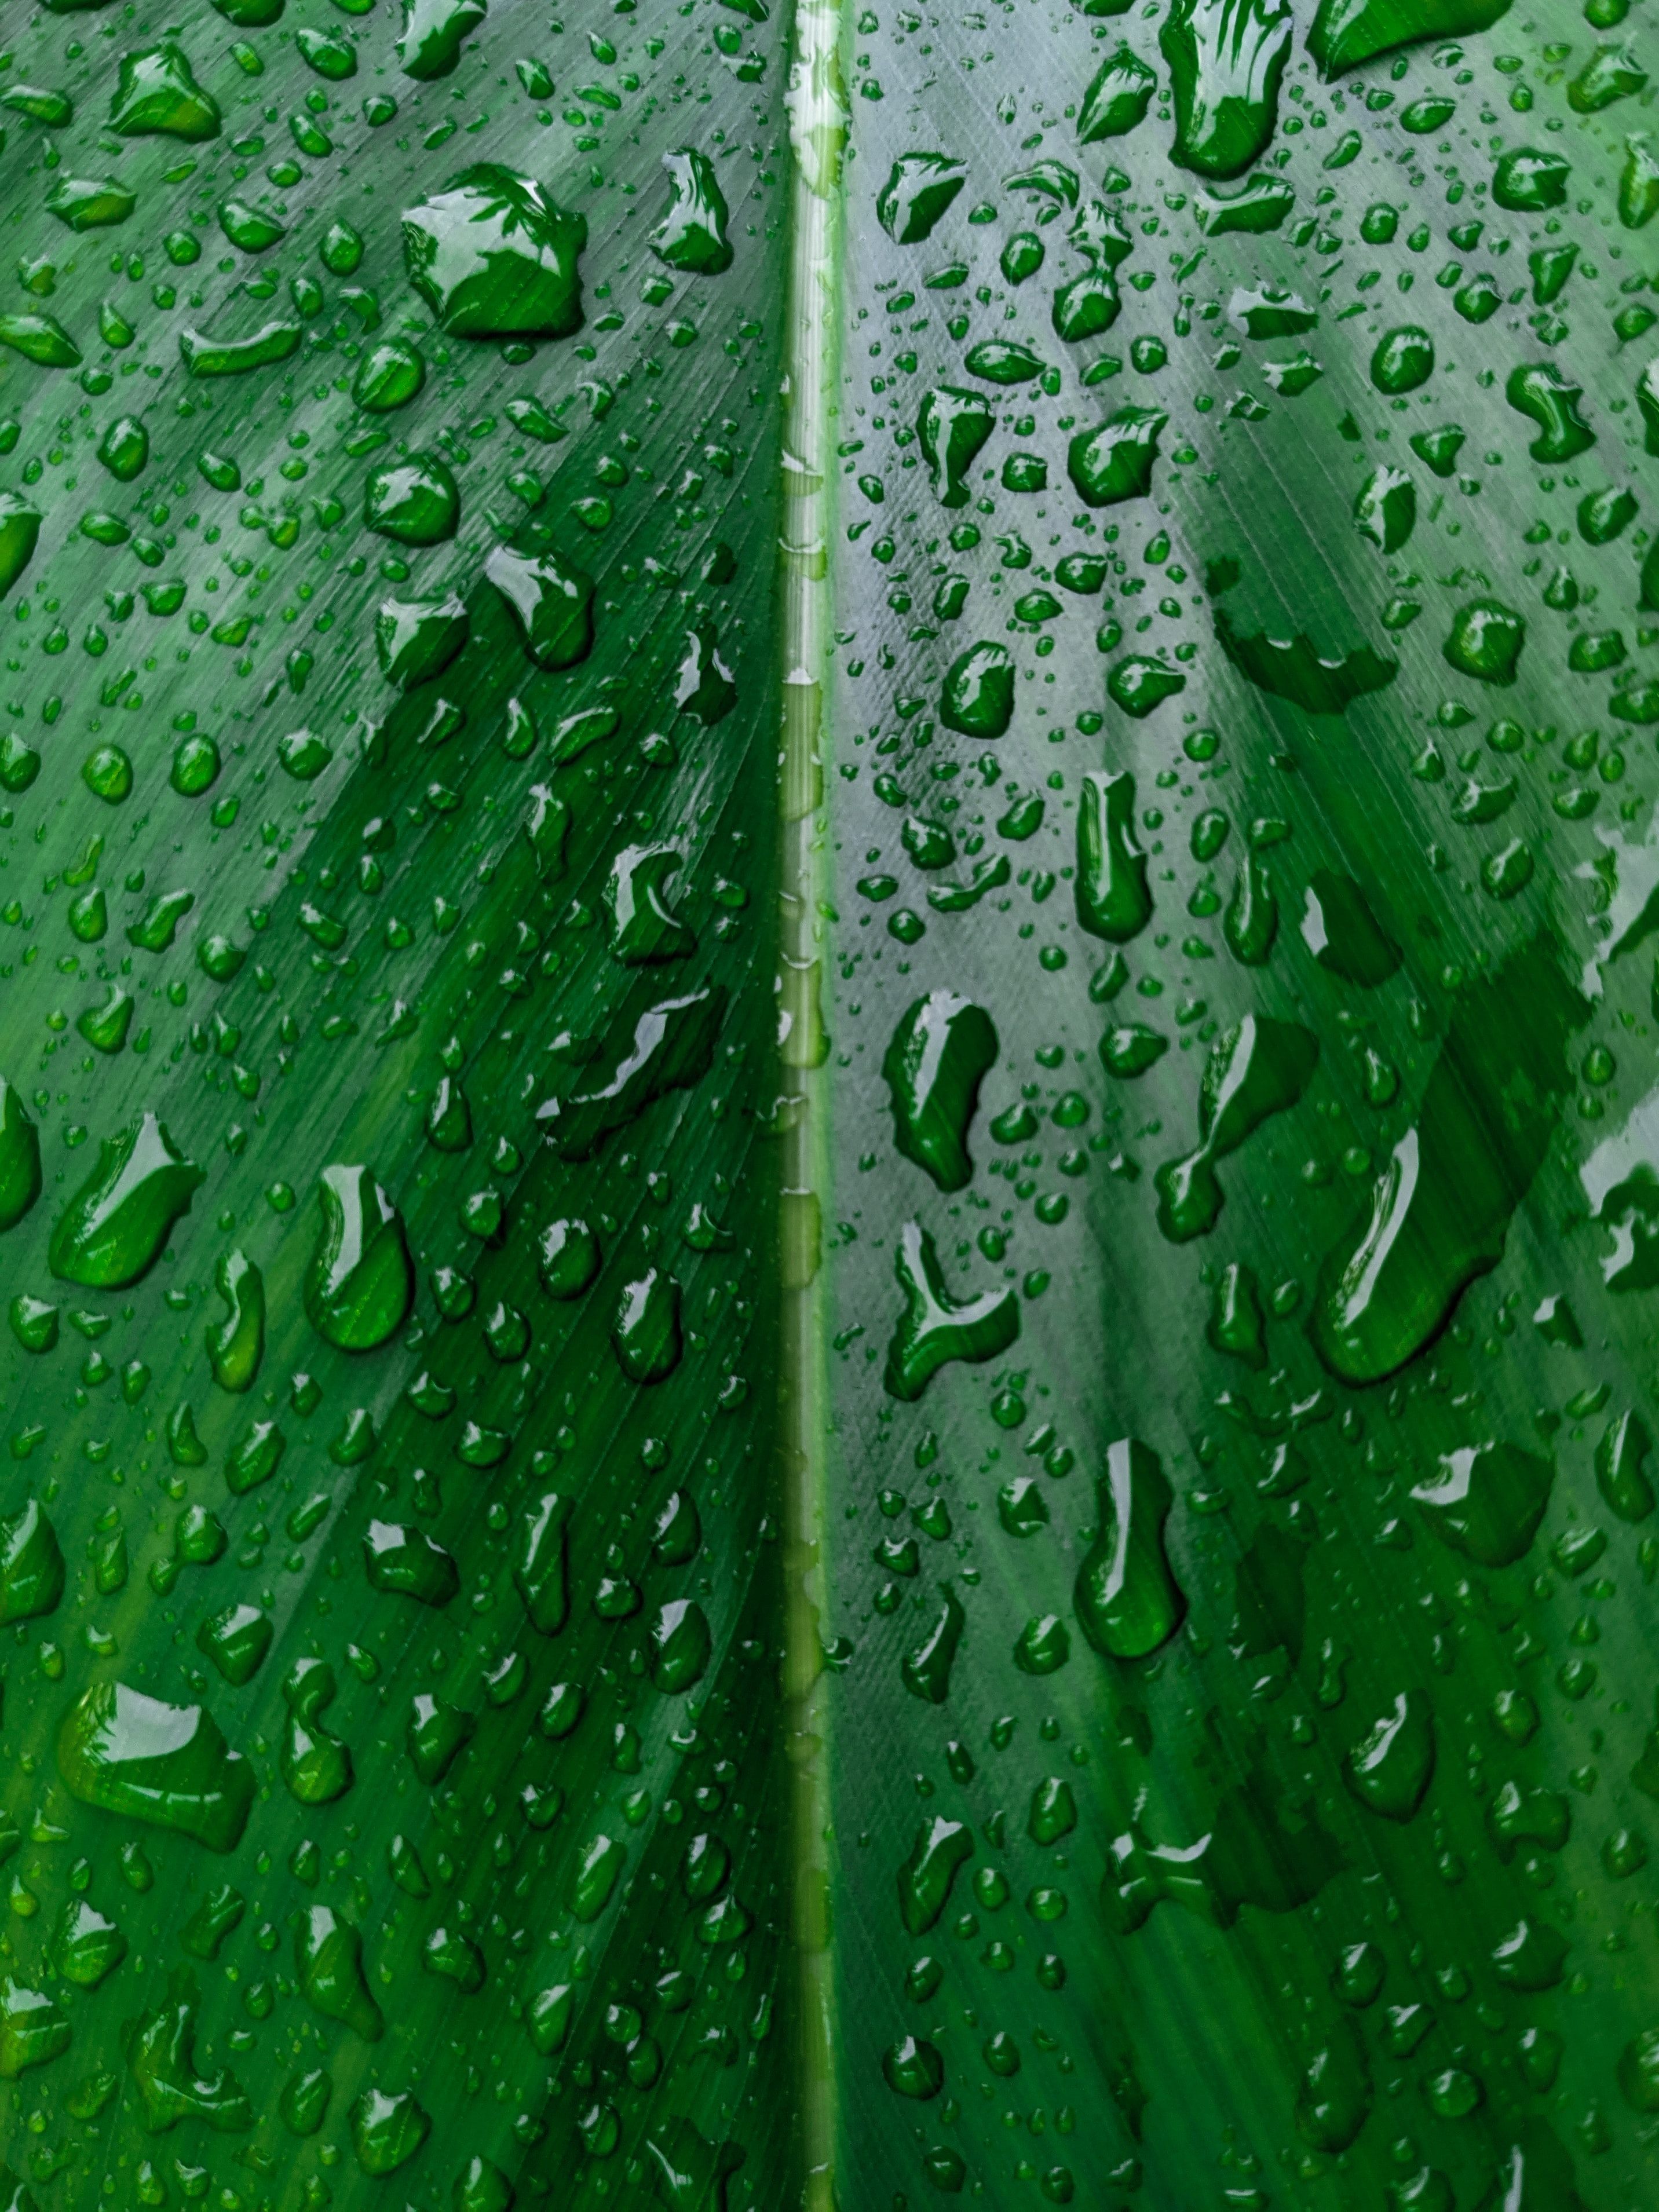 133835 download wallpaper Macro, Sheet, Leaf, Drops, Wet, Water screensavers and pictures for free